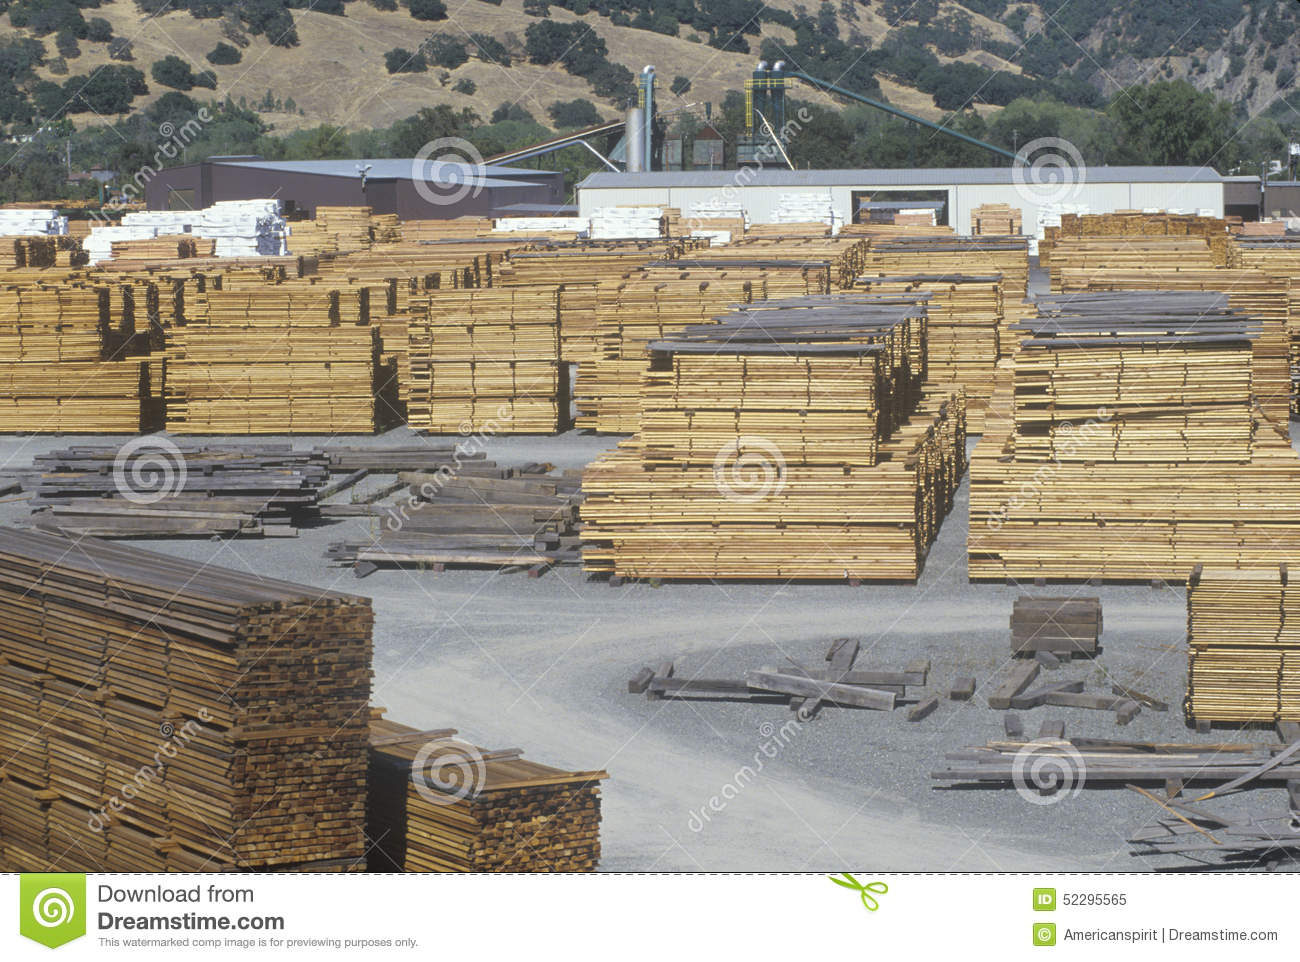 Lumber yard business plan